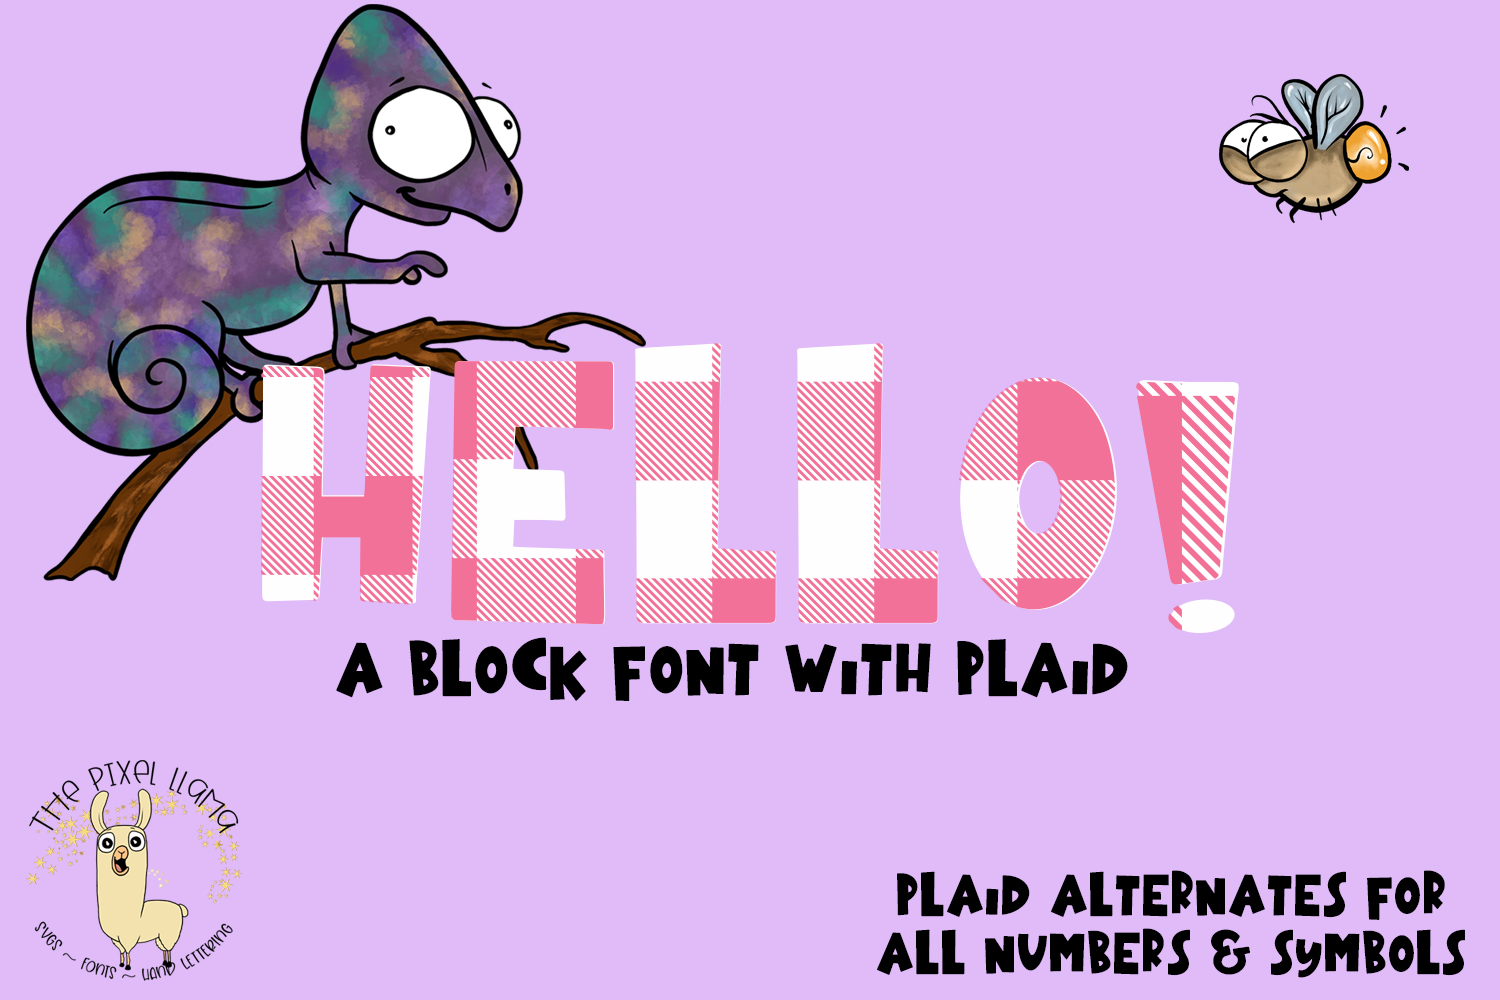 Plaid Chameleon A Block Font with Plaid example image 5